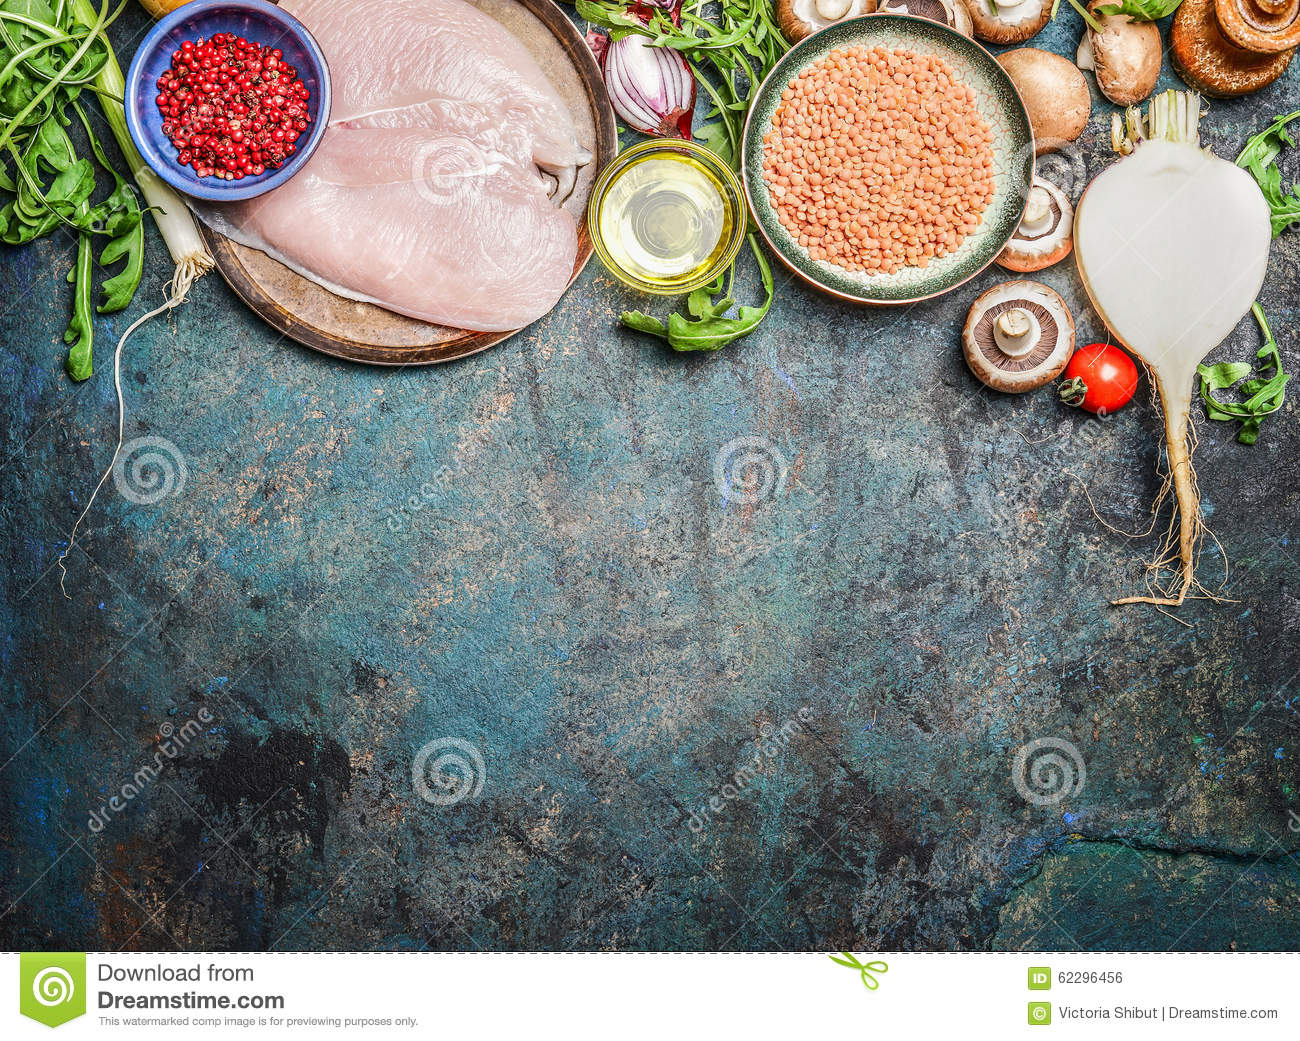 Chicken breast, red lentil, fresh vegetables and various ingredients for cooking on rustic background, top view. Horizontal border